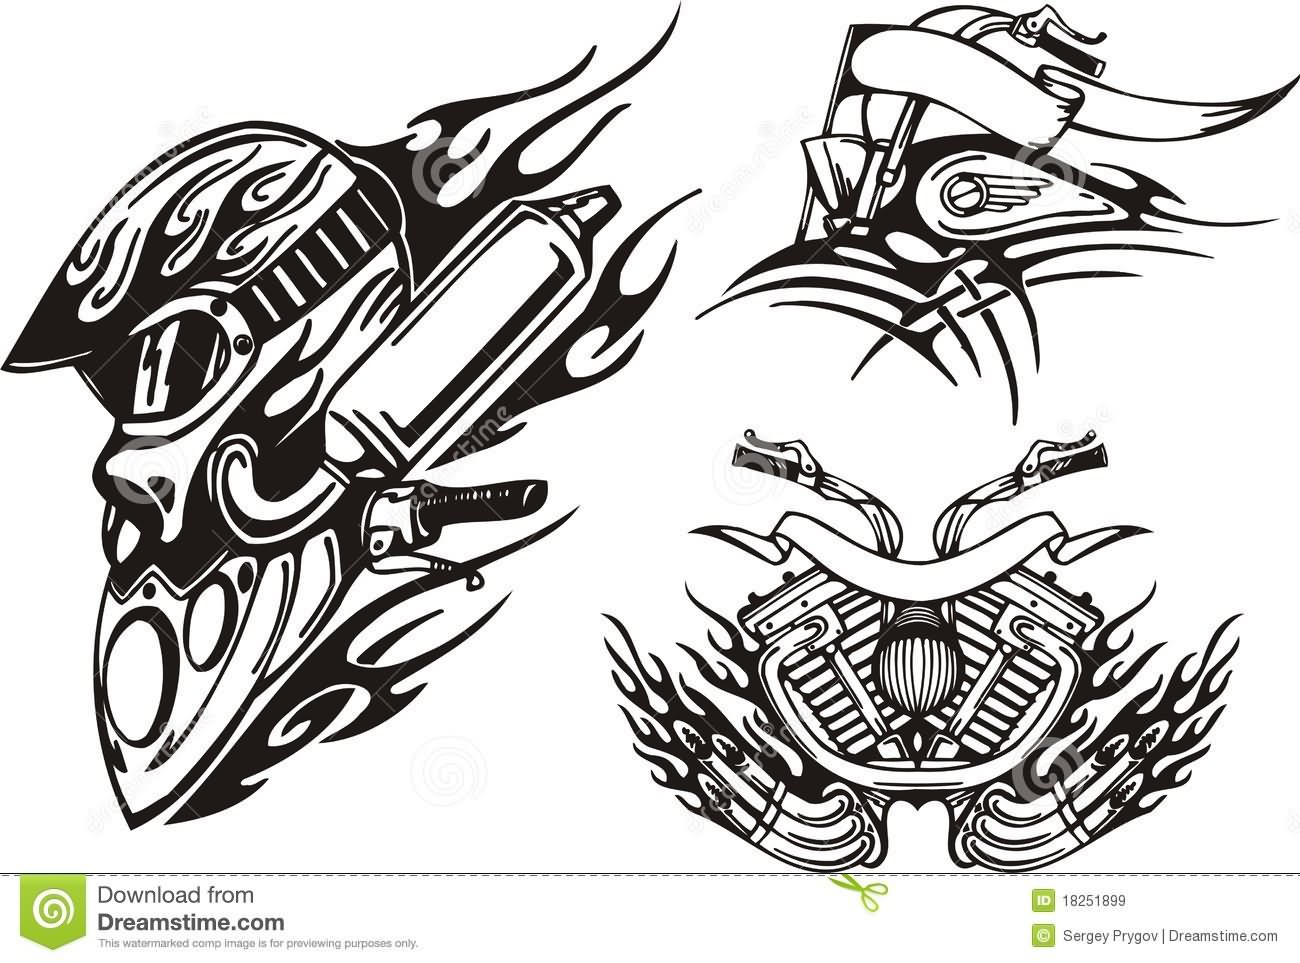 31d82316bf491 Motorcycle Tribal Engine Tattoo Designs